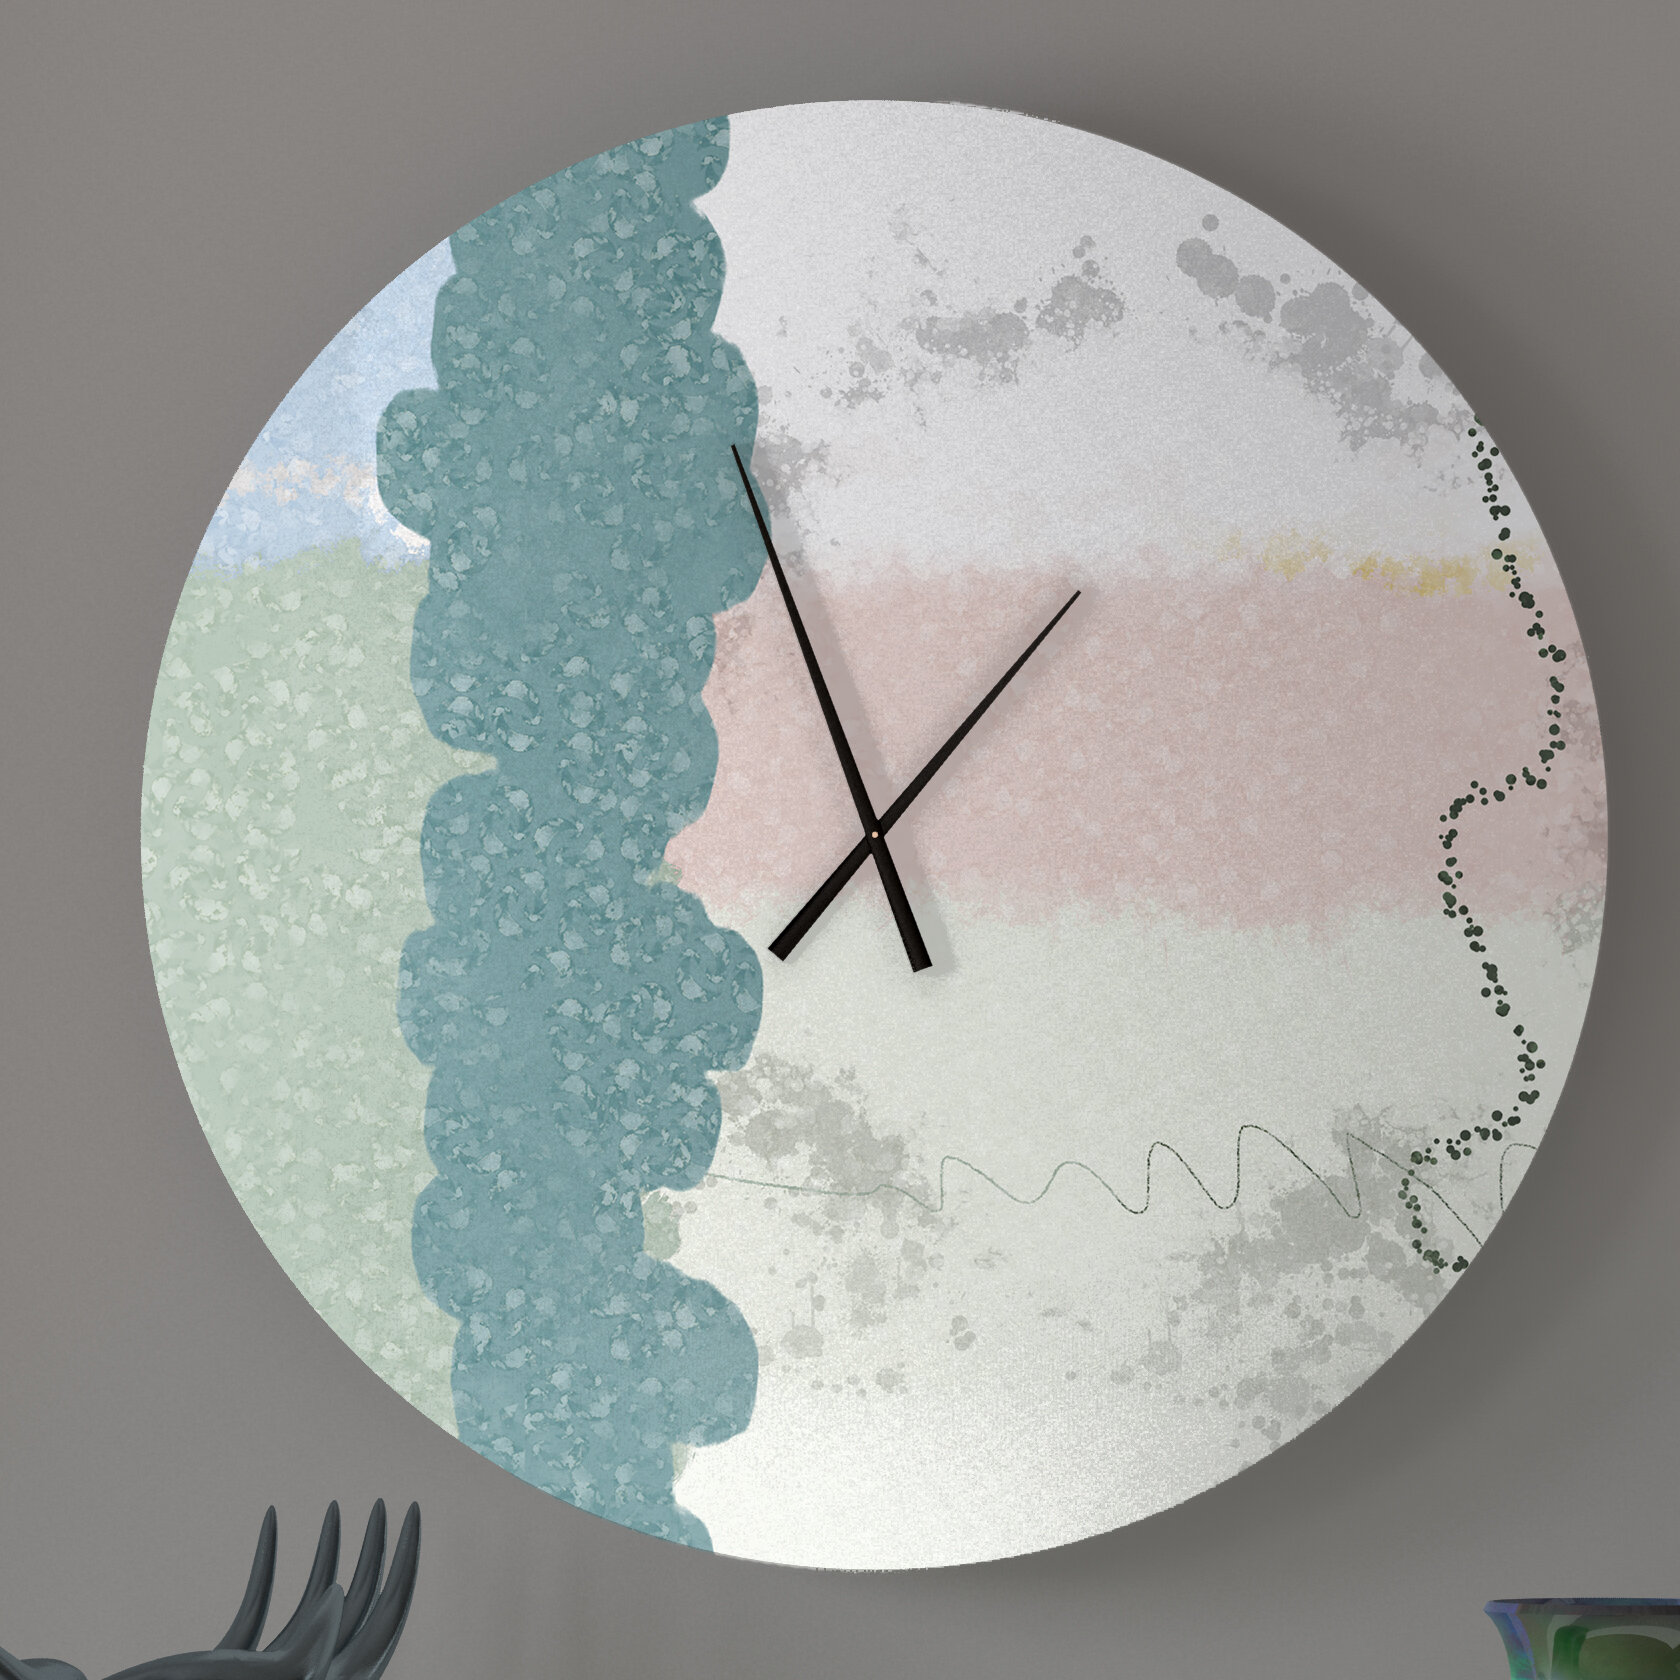 Ebern Designs Up To Date Bound Abstract Metal Wall Clock Wayfair